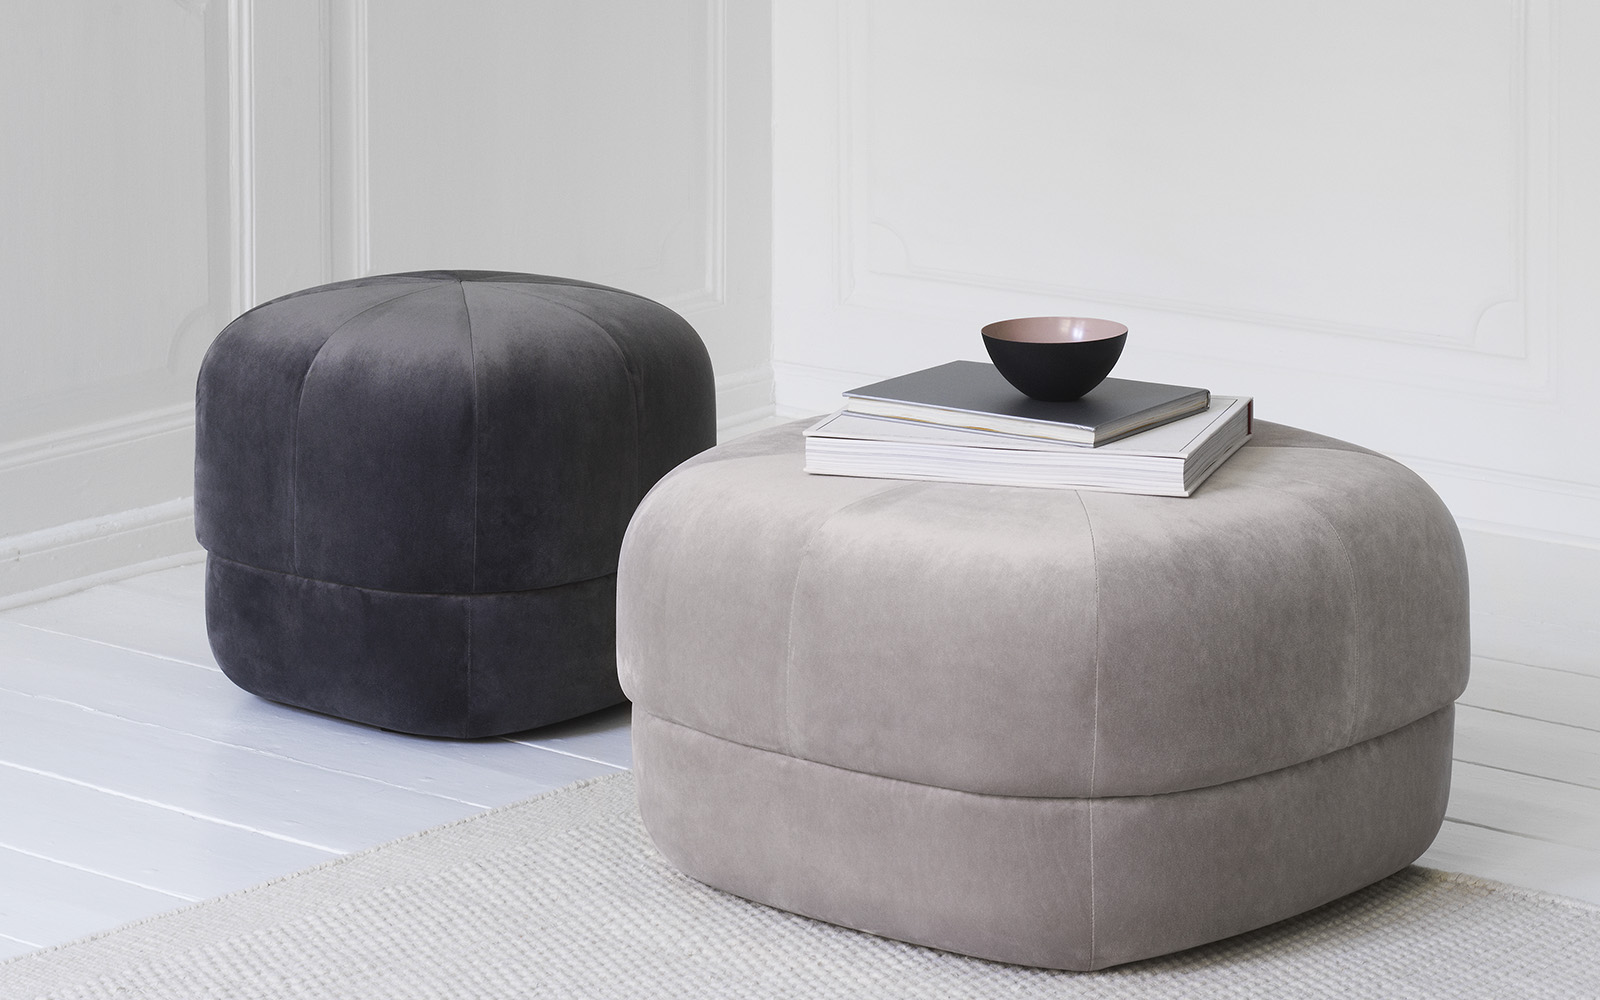 Circus pouf small gray large beige - Normann Copenhagen